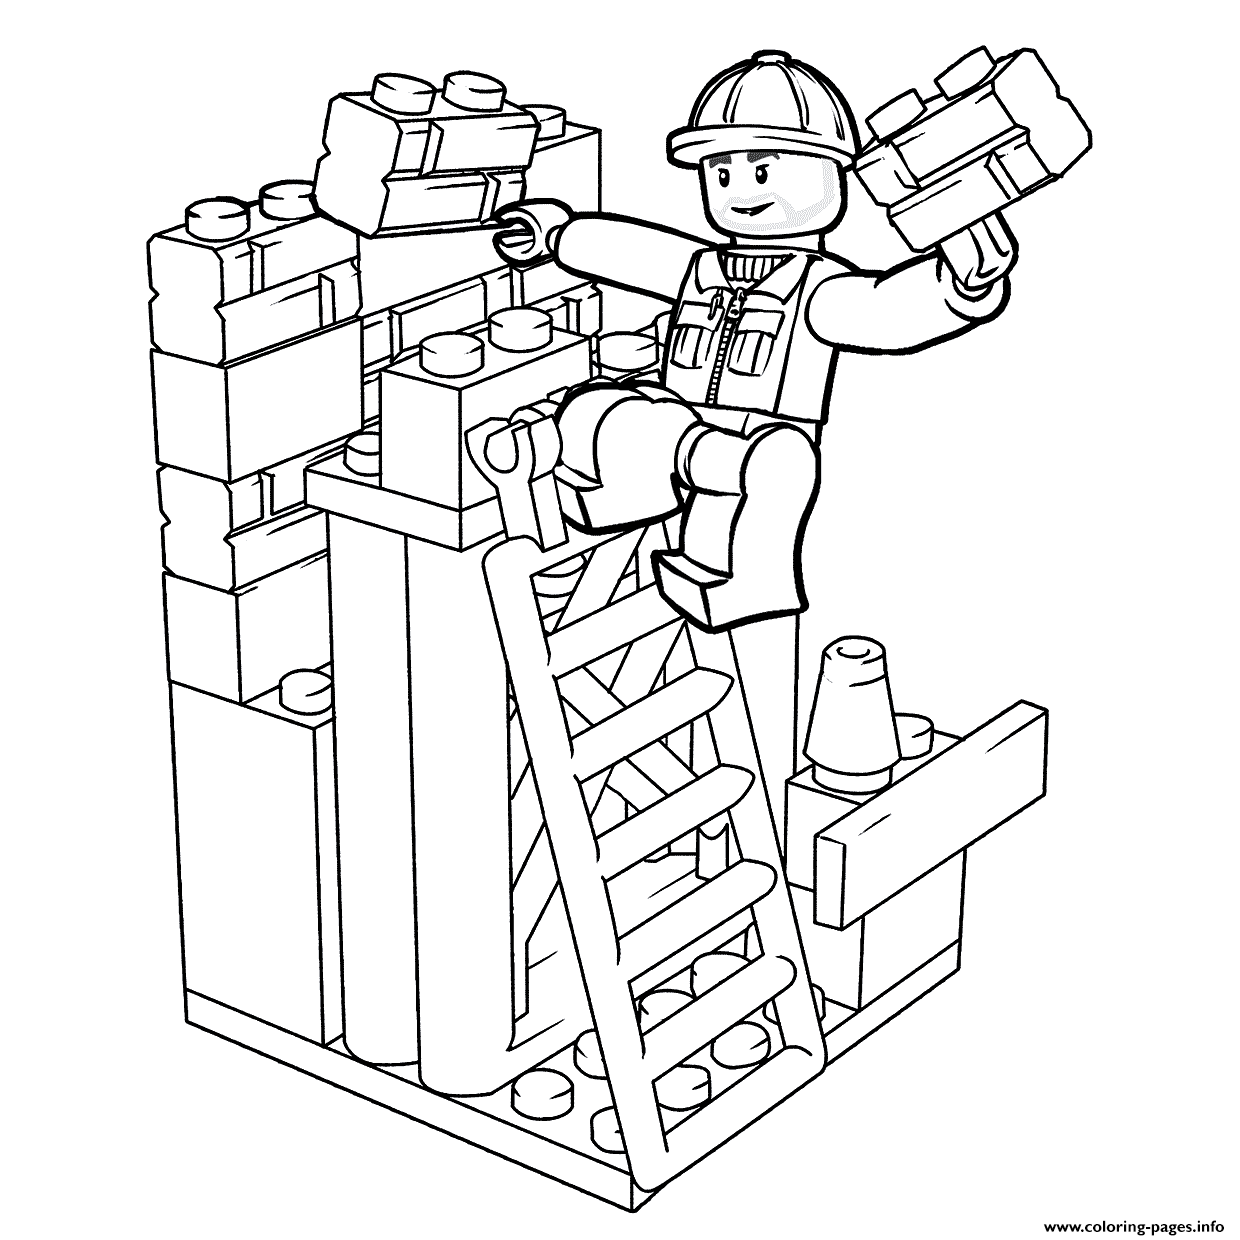 Lego Construction Worker Coloring Pages Printable